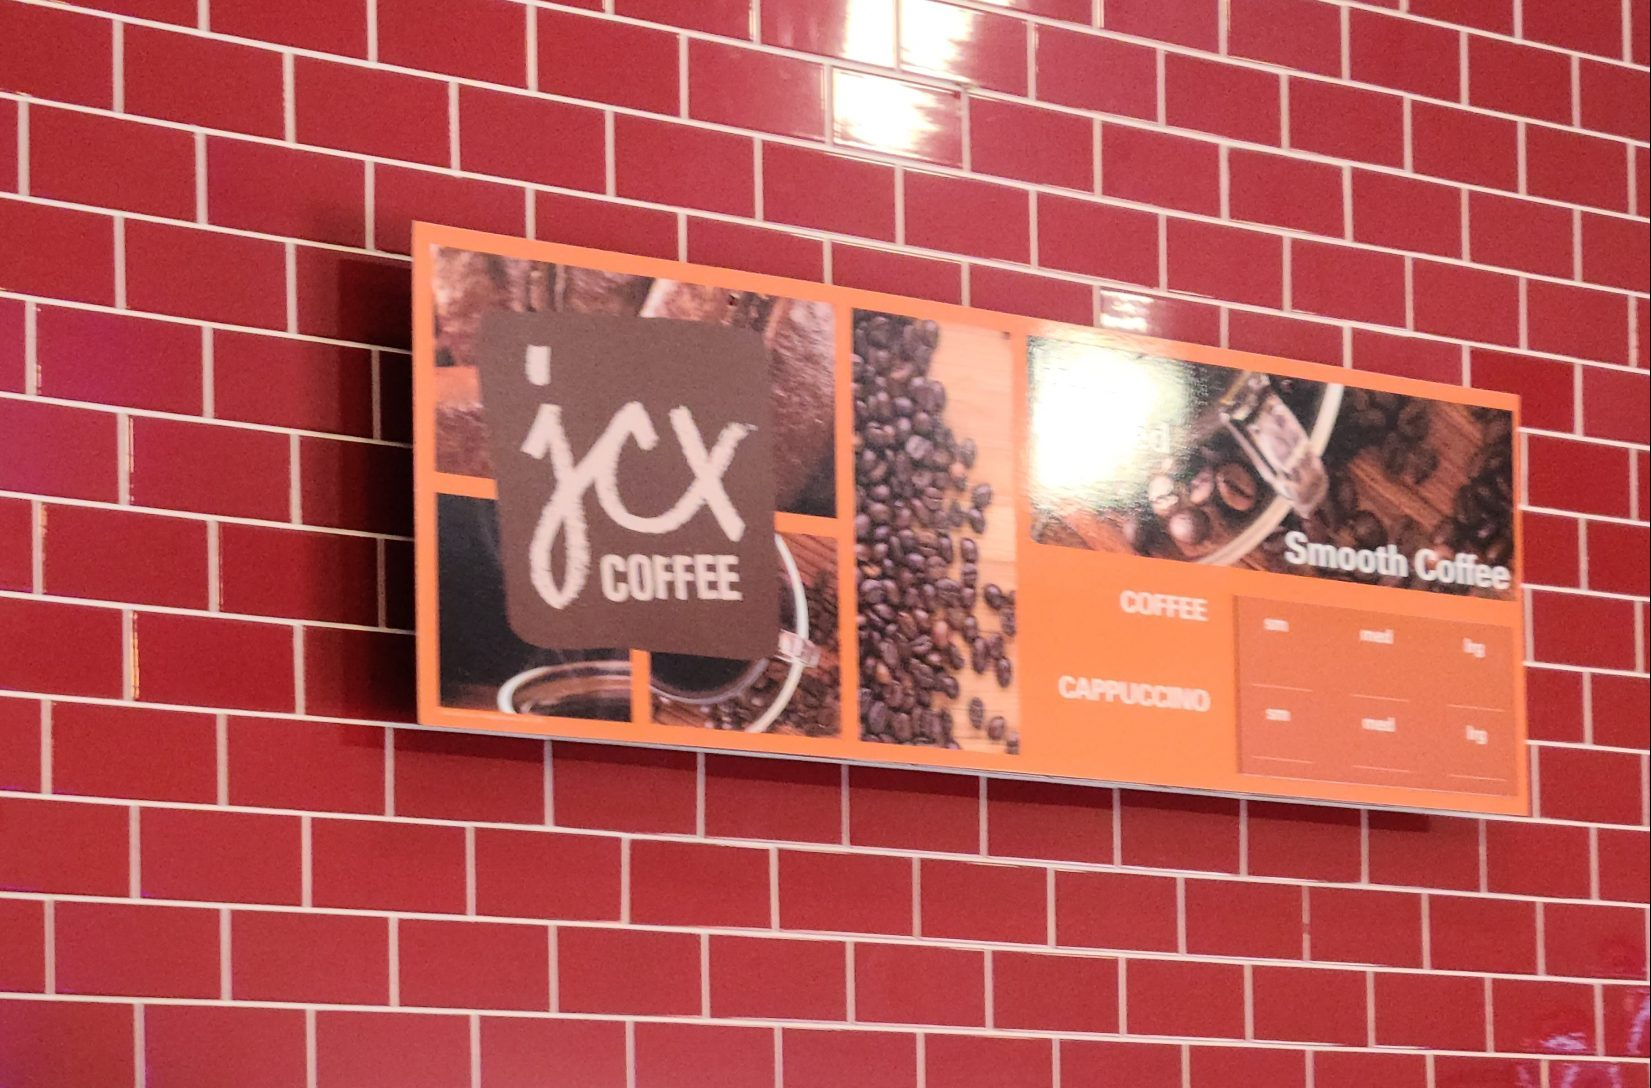 We installed this menu sign for Bewley's Java City establishment in Santa Monica. With this, customers can see the flavorful varieties of coffee the establishment is offering.